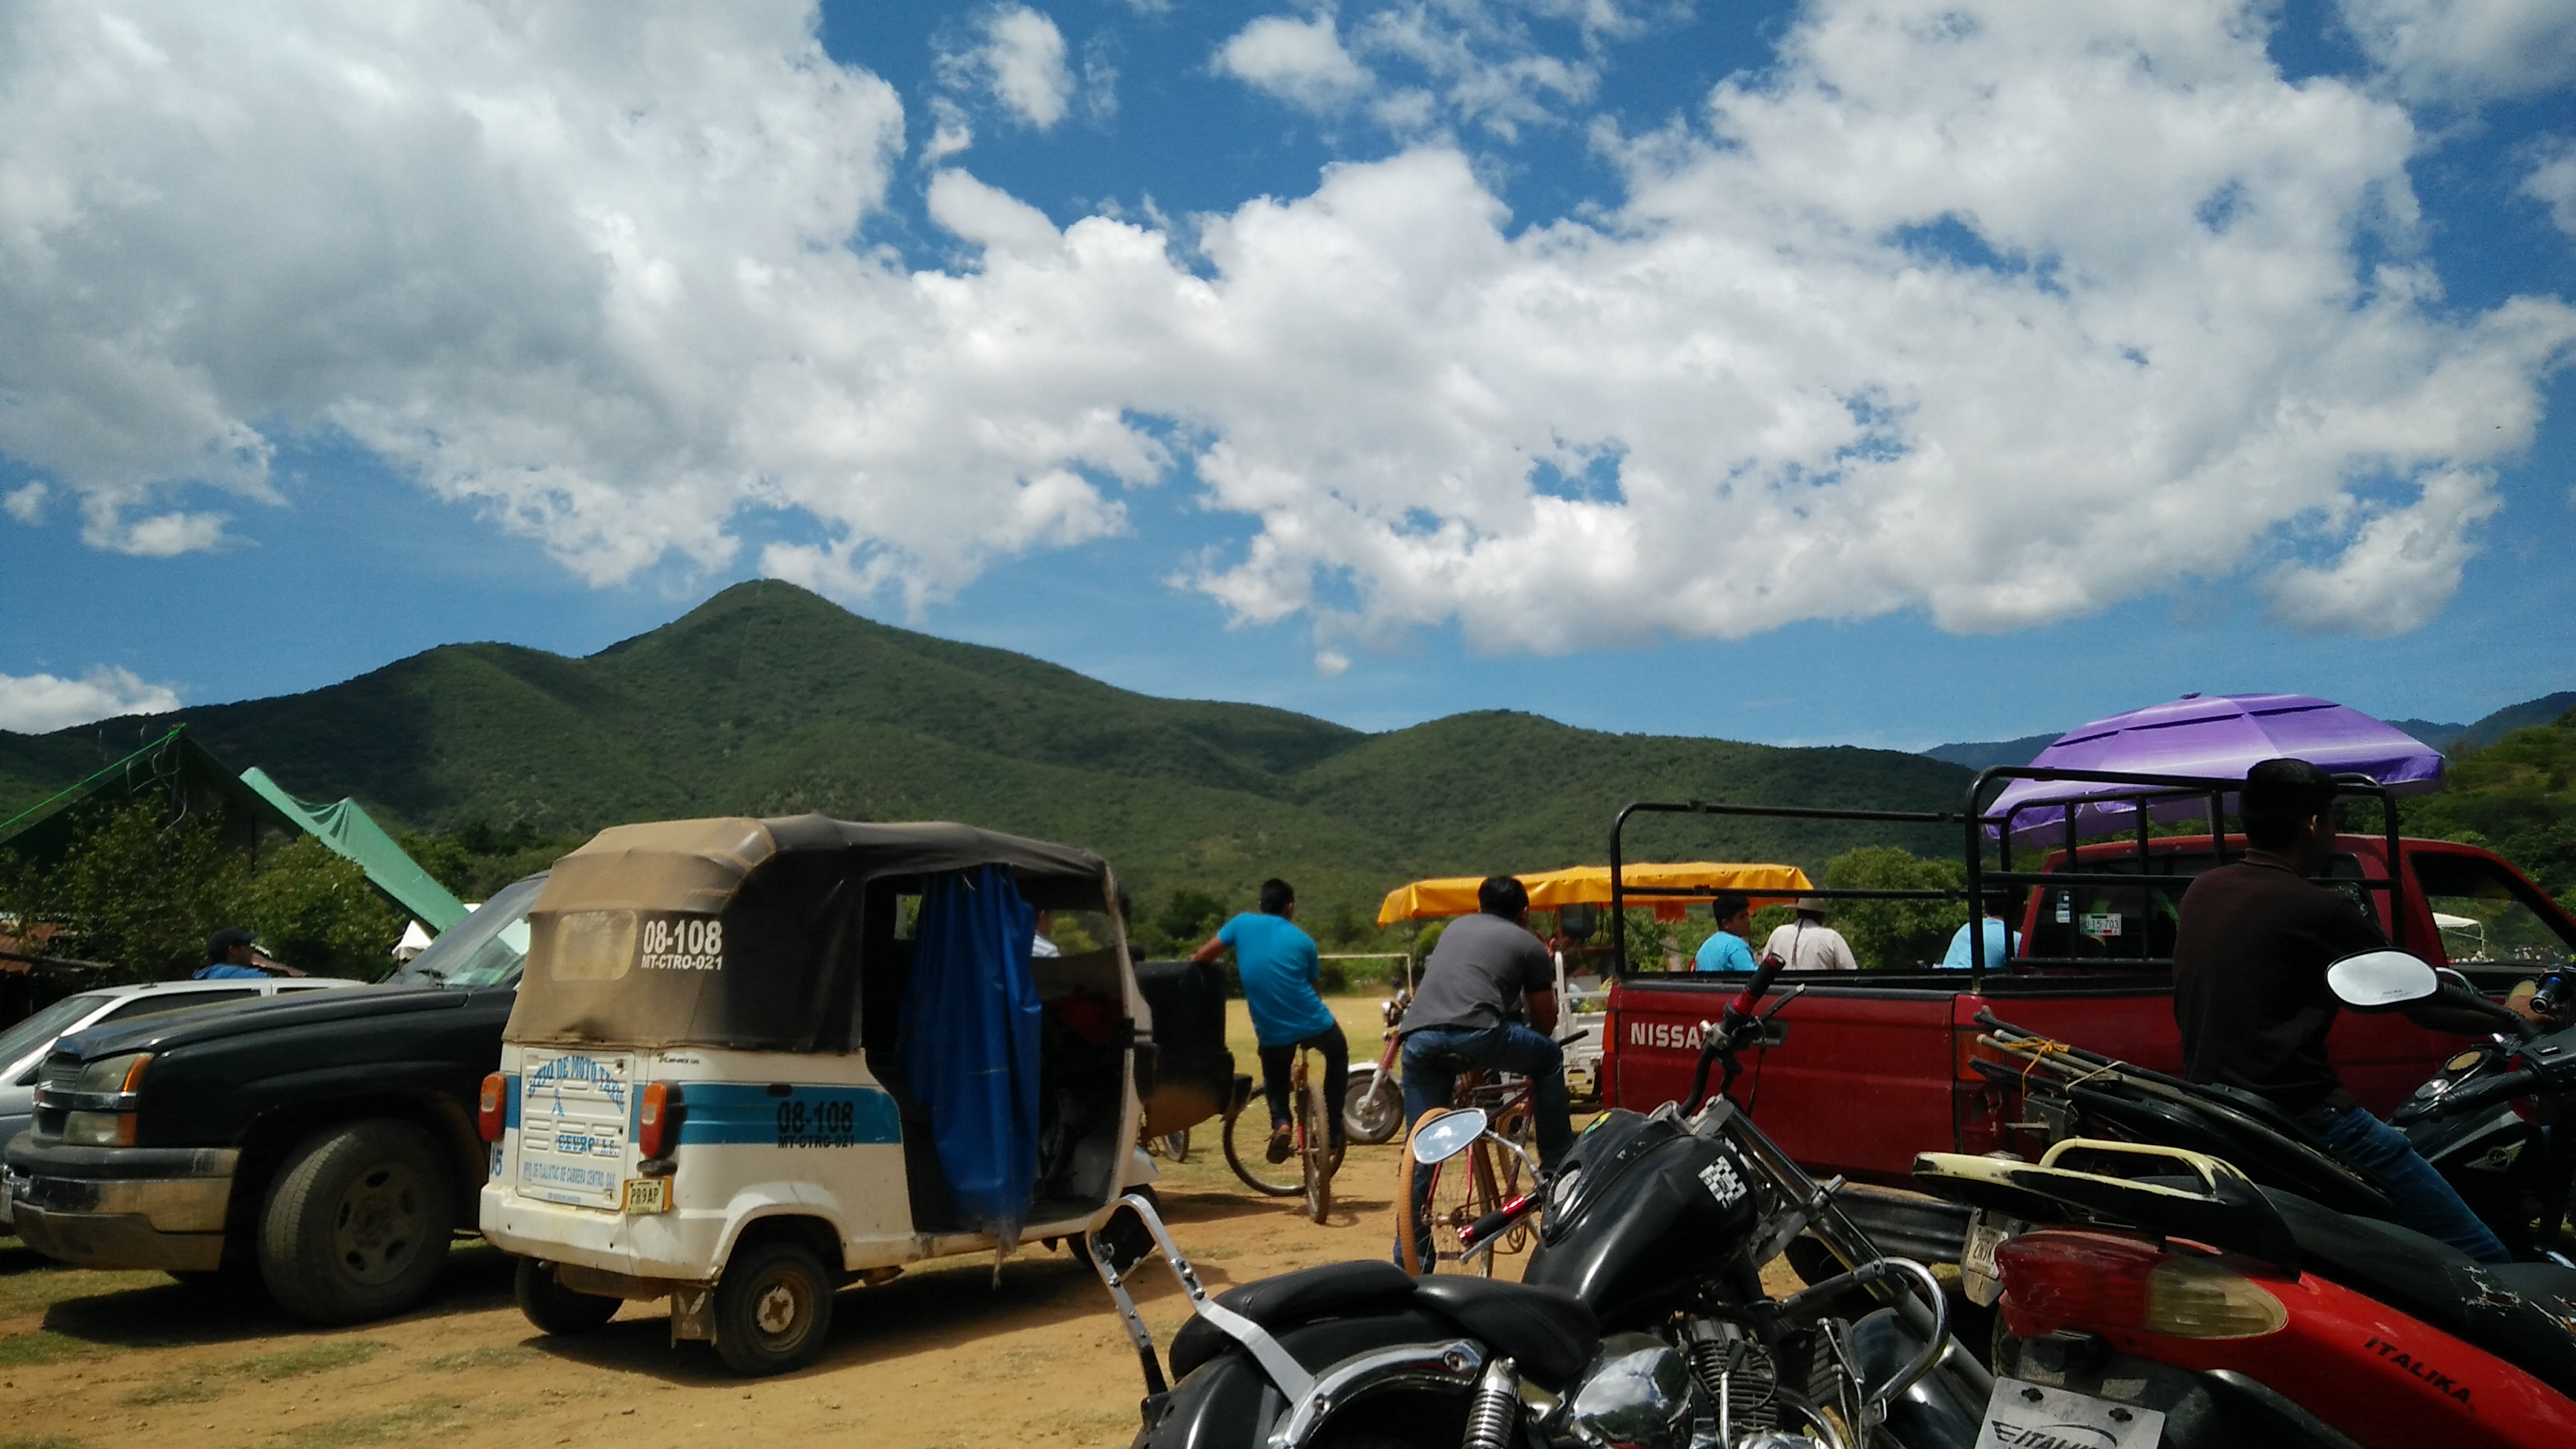 Motorcycles, two men, and cars are parked in a dirt field in front of mountains and a blue sky.